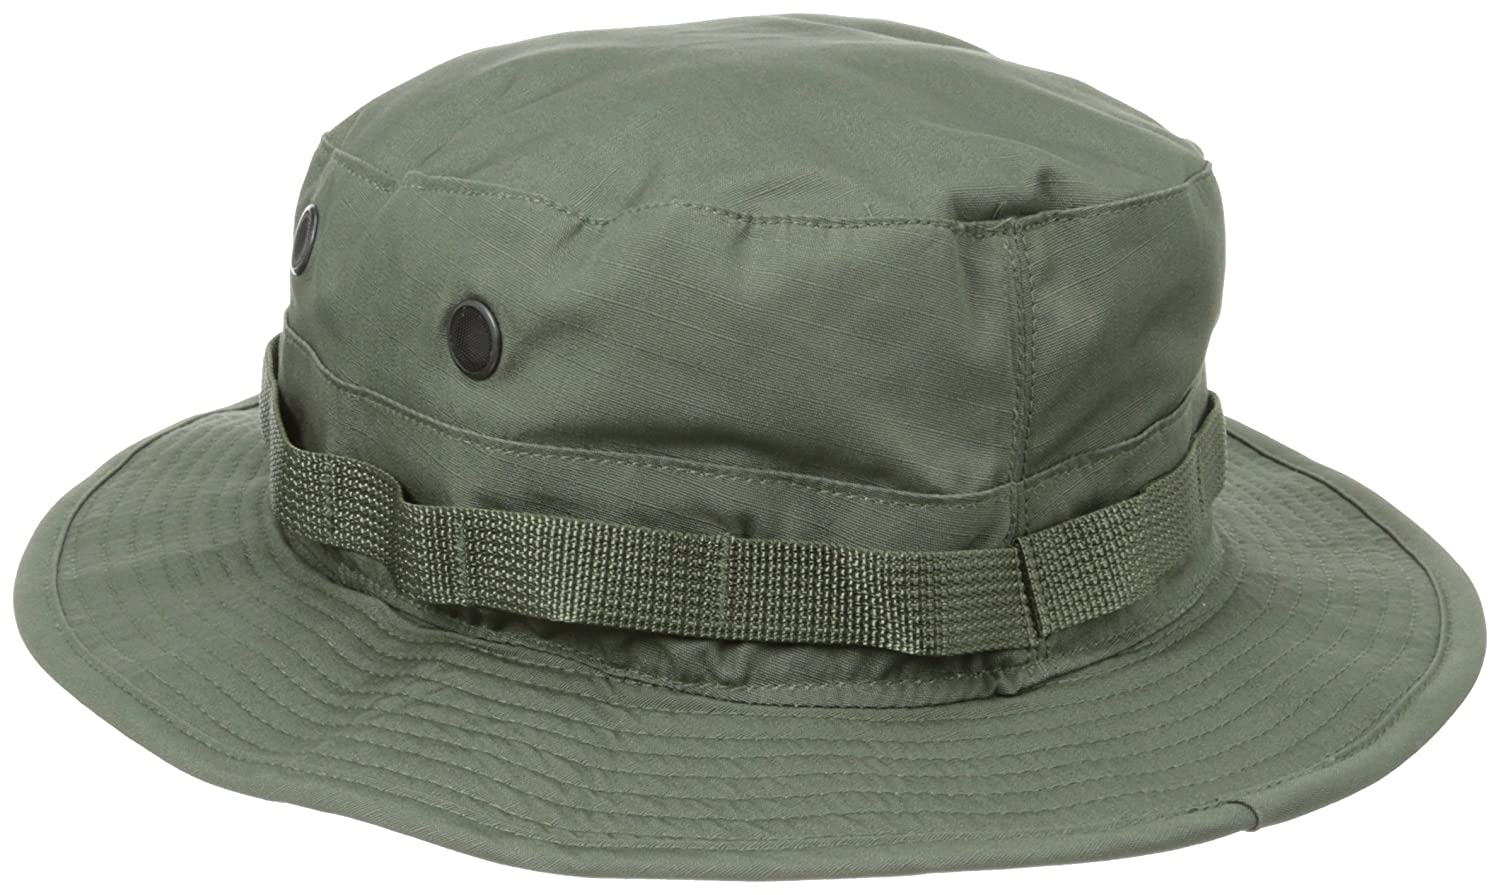 8c4f51bab06 Amazon.com   Propper Men s 100-Percent Cotton Boonie Sun Hat   Military  Apparel Accessories   Sports   Outdoors